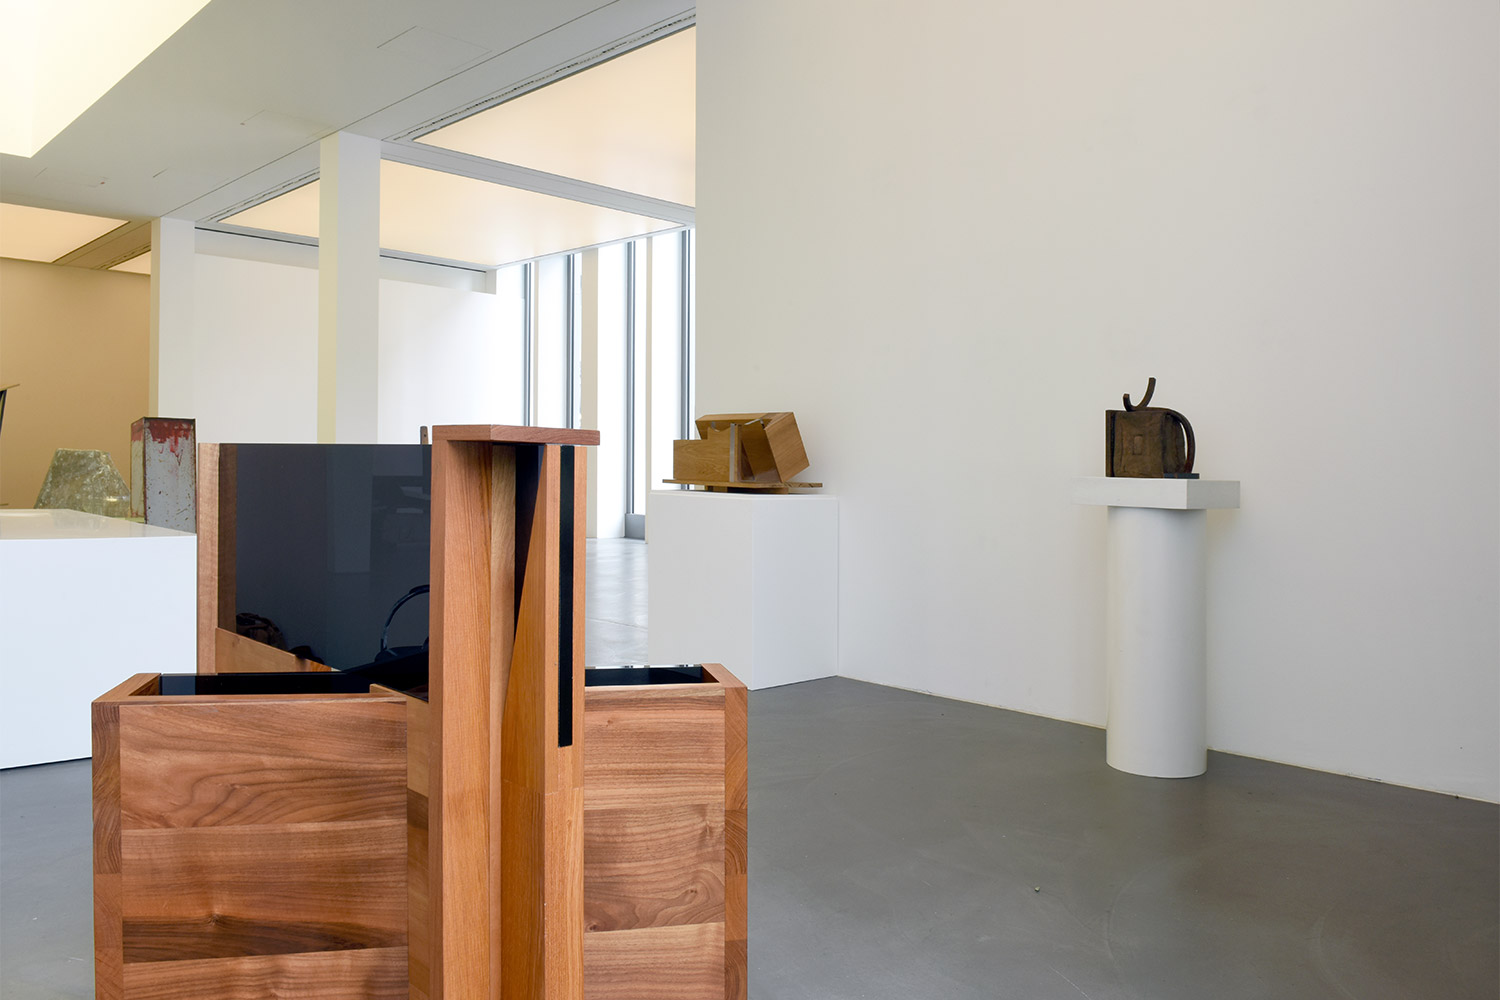 ... Anthony Caro, Installation View ...